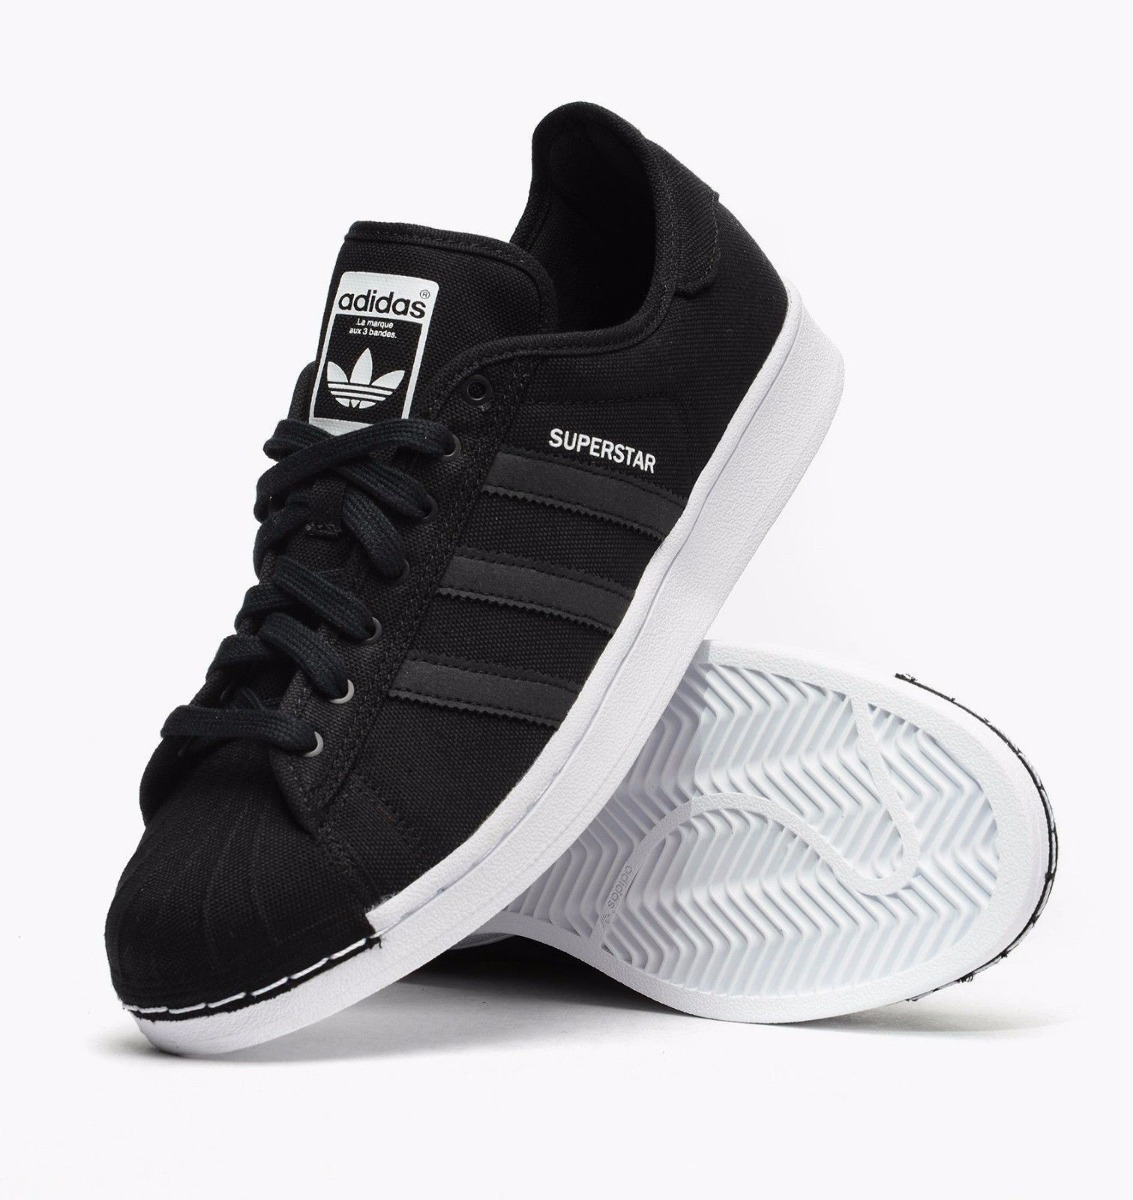 promo code wide varieties cheap sale Zapatillas adidas Superstar De Tela